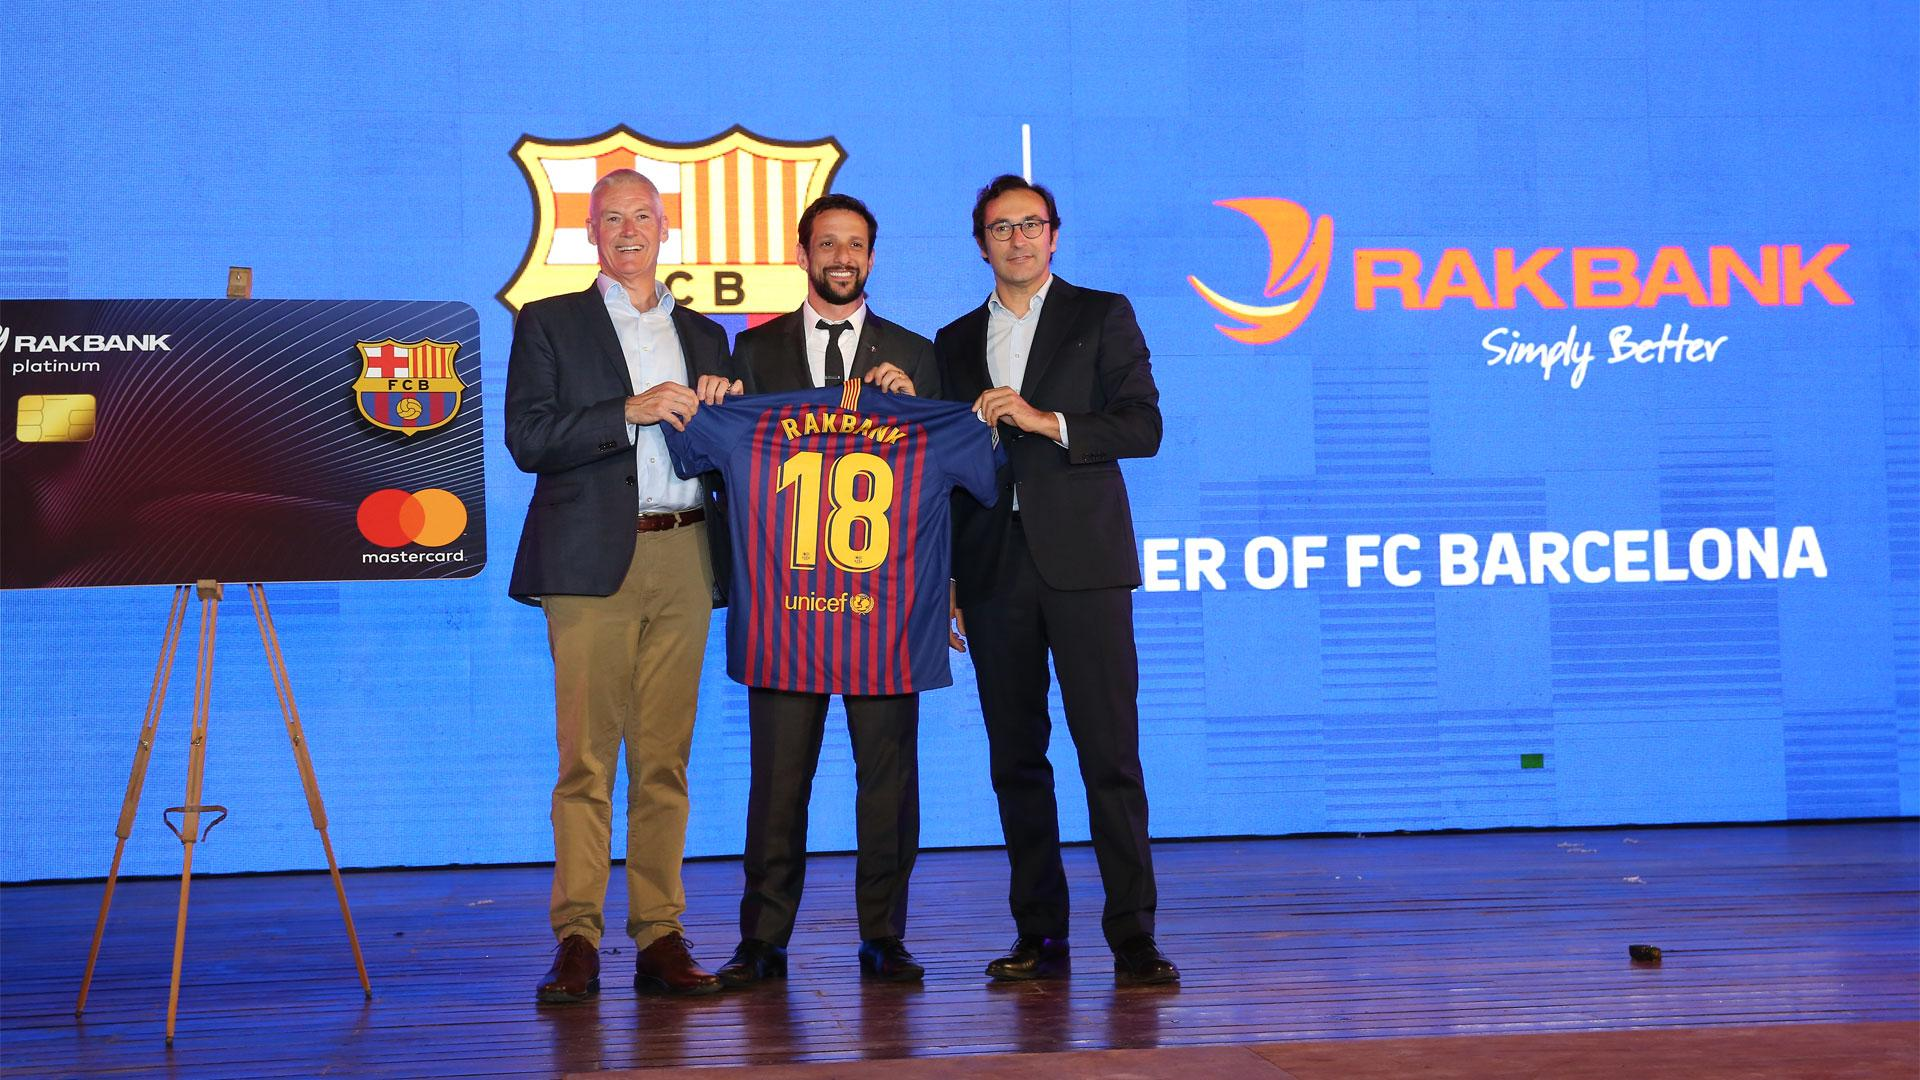 Fc Barcelona Rakbank And Mastercard Join Hands To Launch A New Affinity Credit Card In The United Arab Emirates